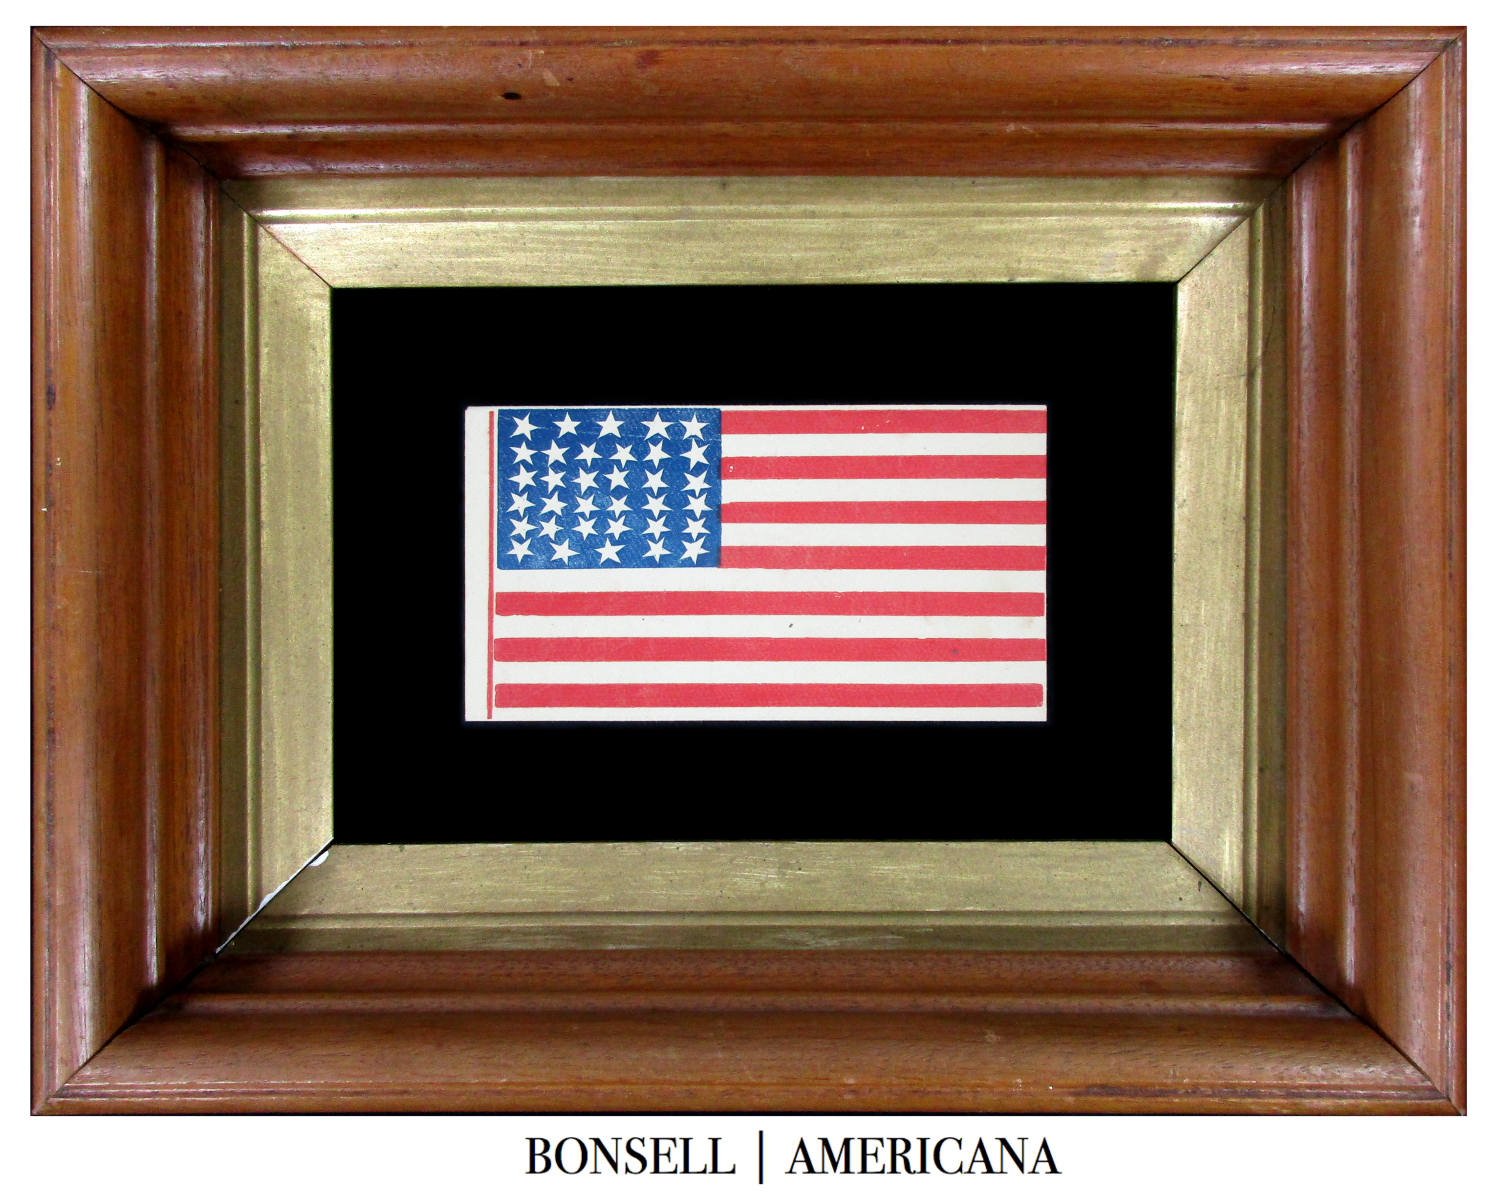 Coming Soon: 34 Star Antique Flag Cover with Interesting 5-6-6-6-6-5 Pattern